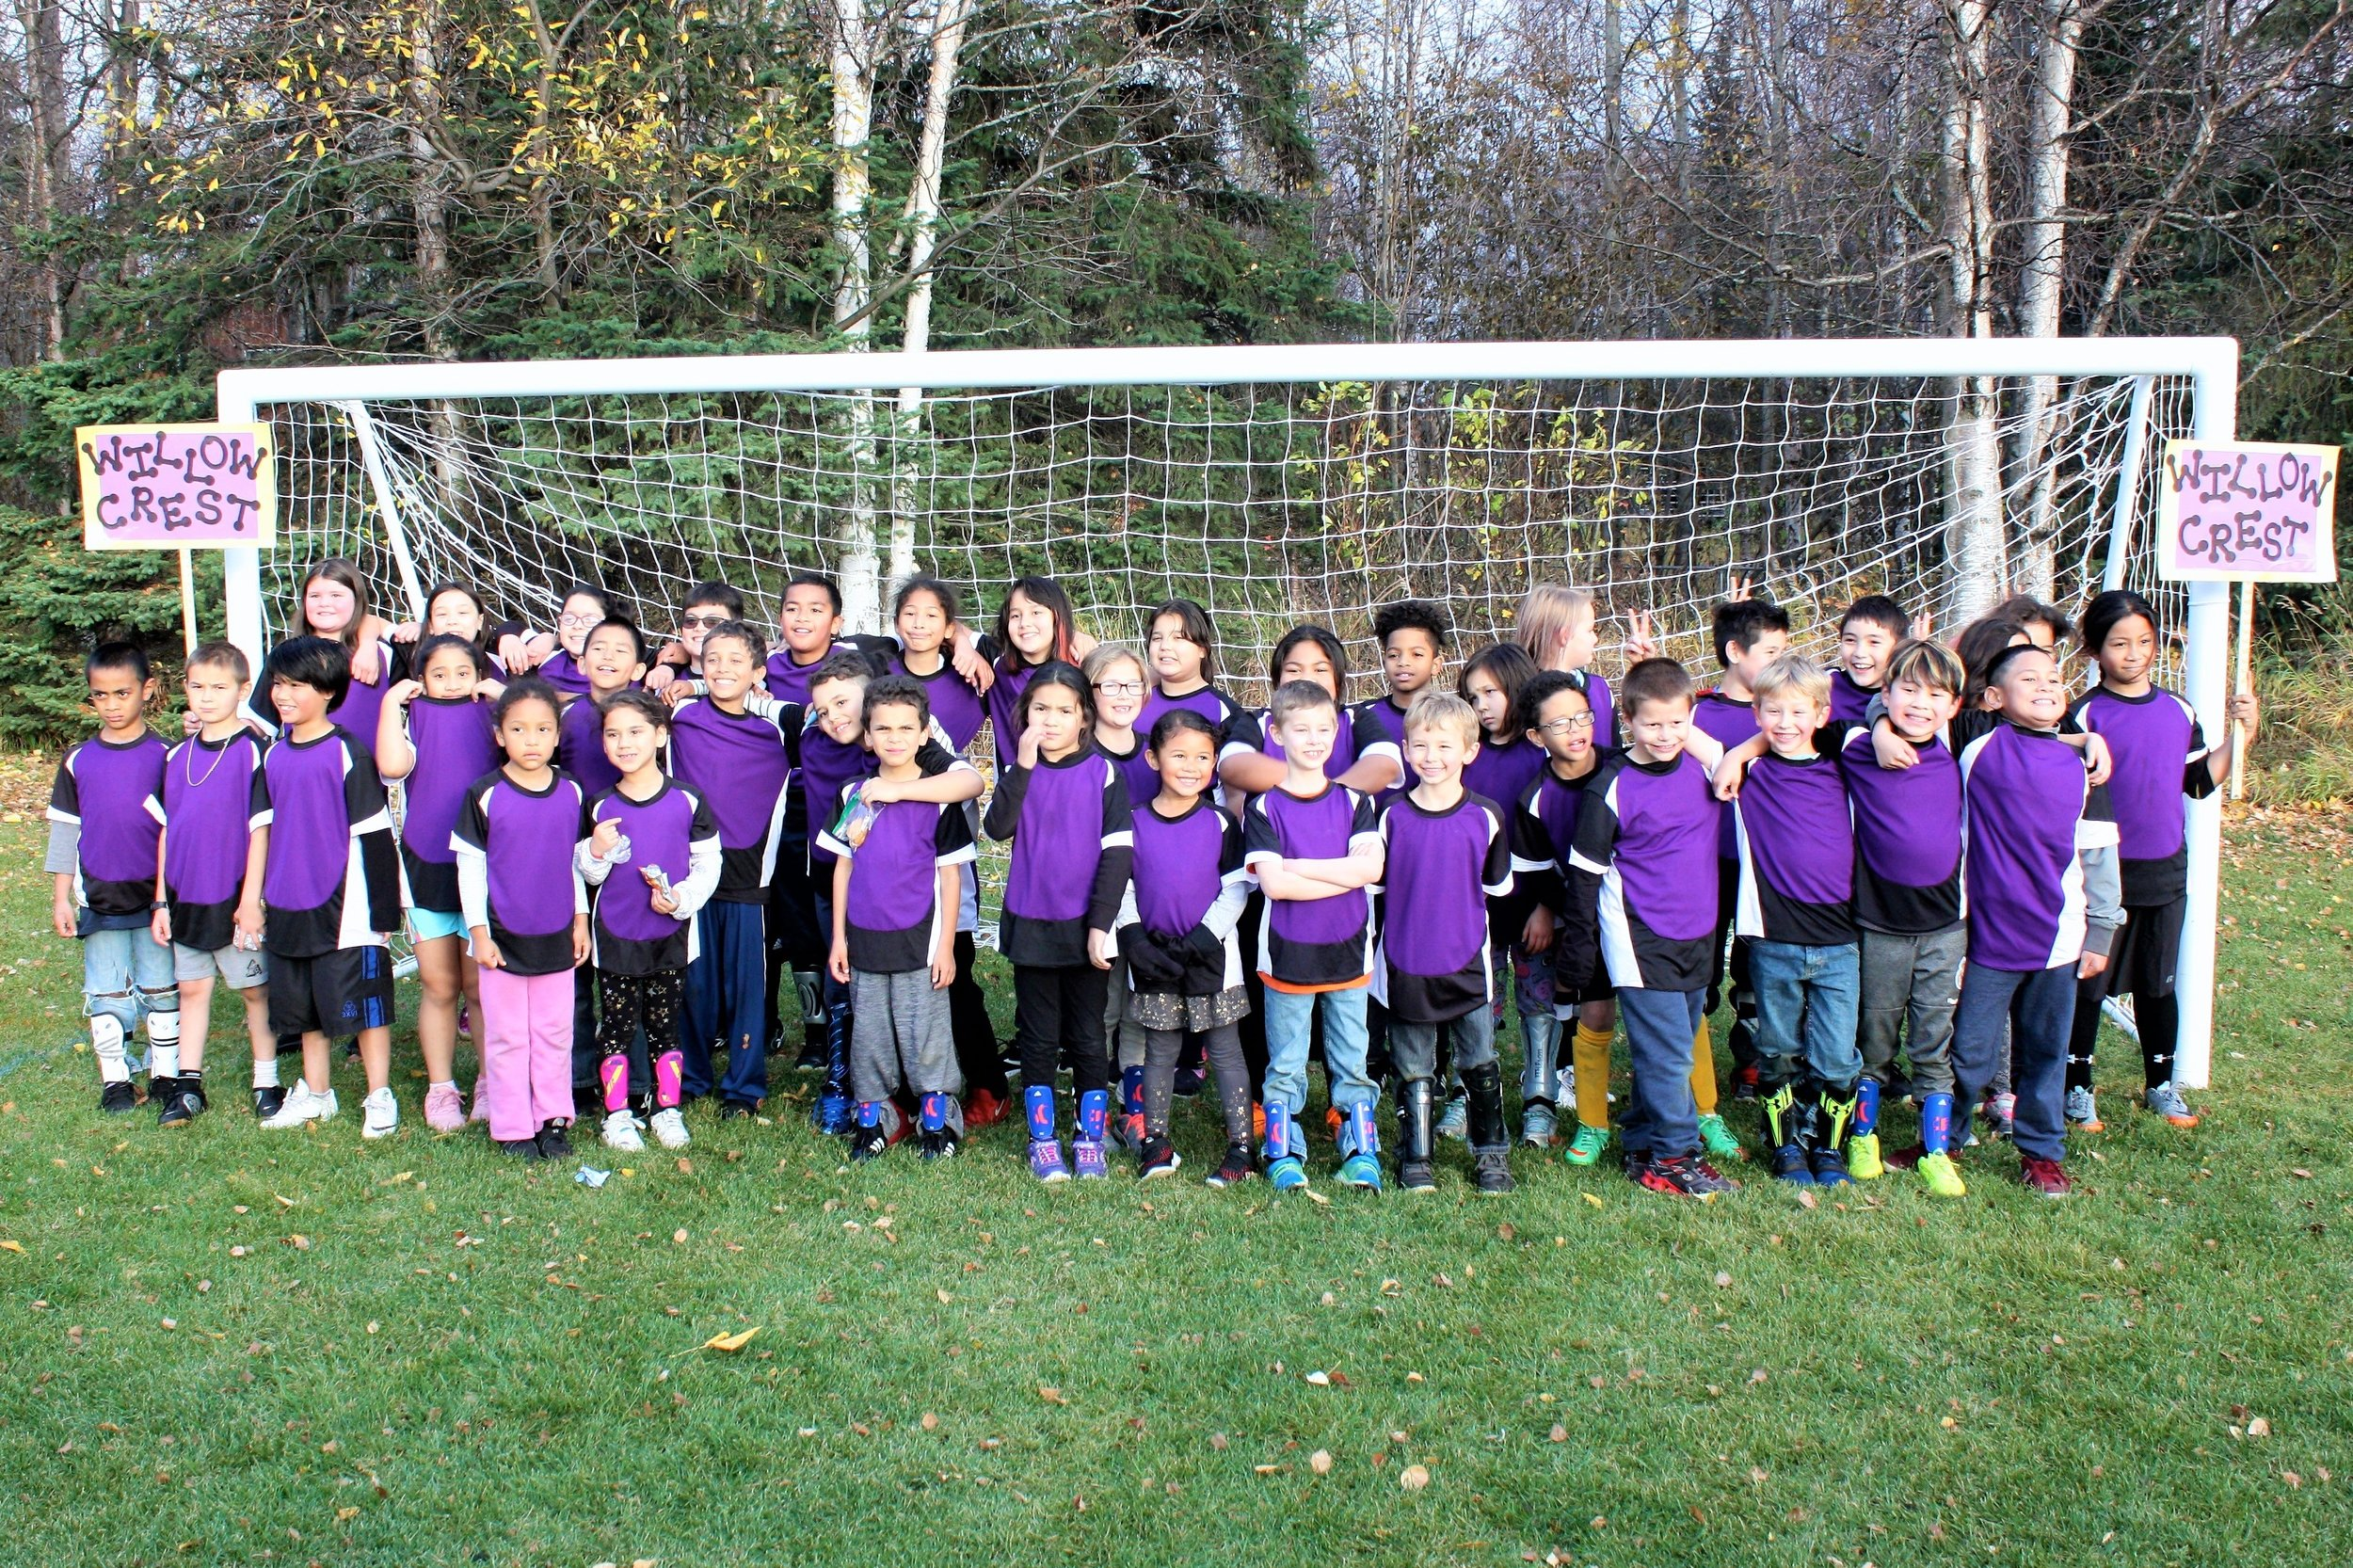 Willowcrest Soccer Team (Grades K-4th) posing as a team in their new soccer uniforms.